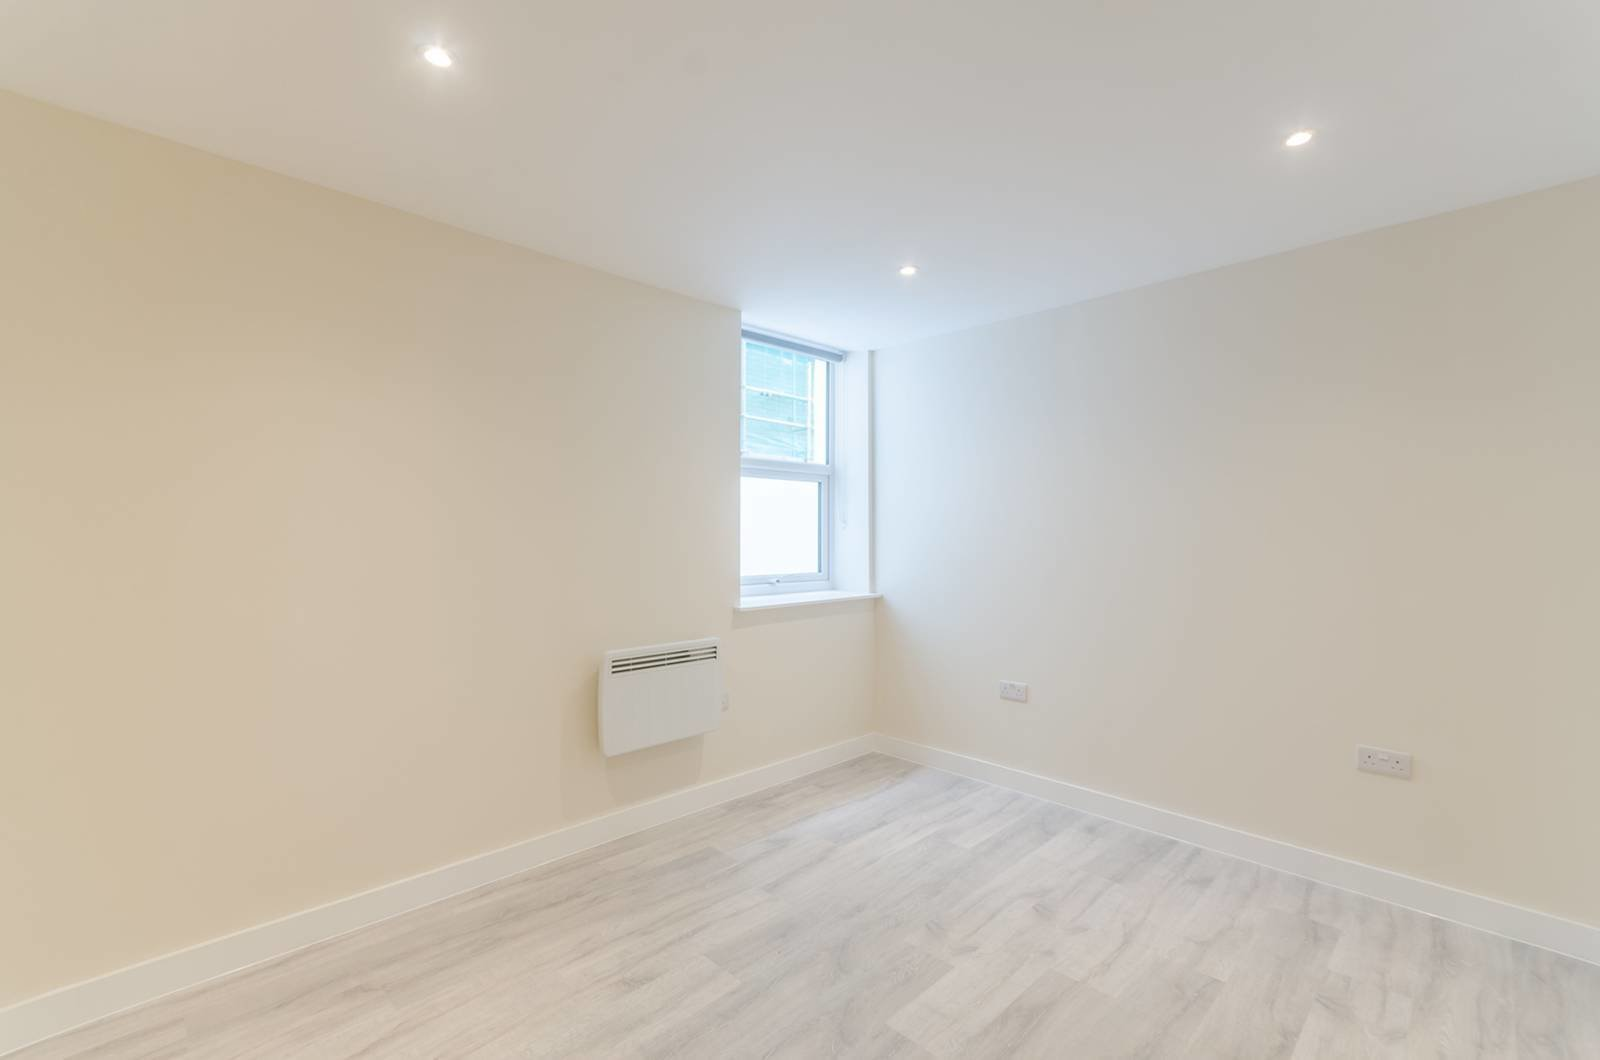 Best 1 Bedroom Flat To Rent In Brixton Road Brixton Sw9 London With Pictures Original 1024 x 768